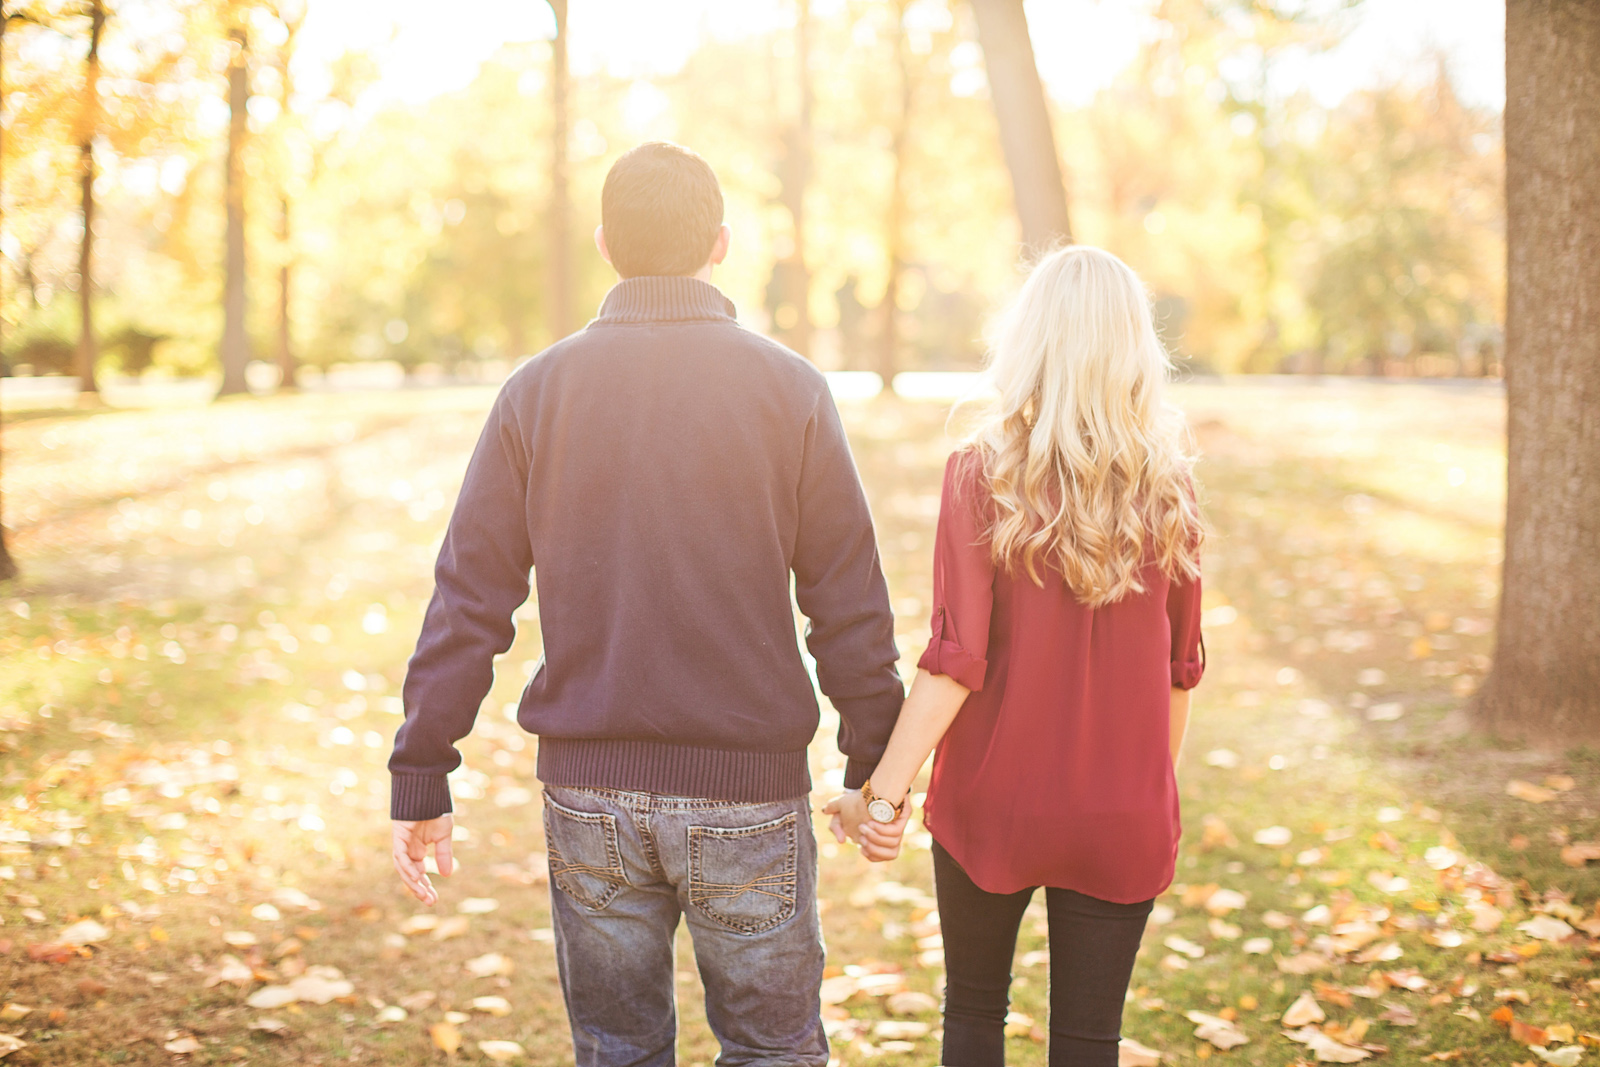 St Louis Tower Grove Park Fall Engagement Session_20141101_160442.jpg